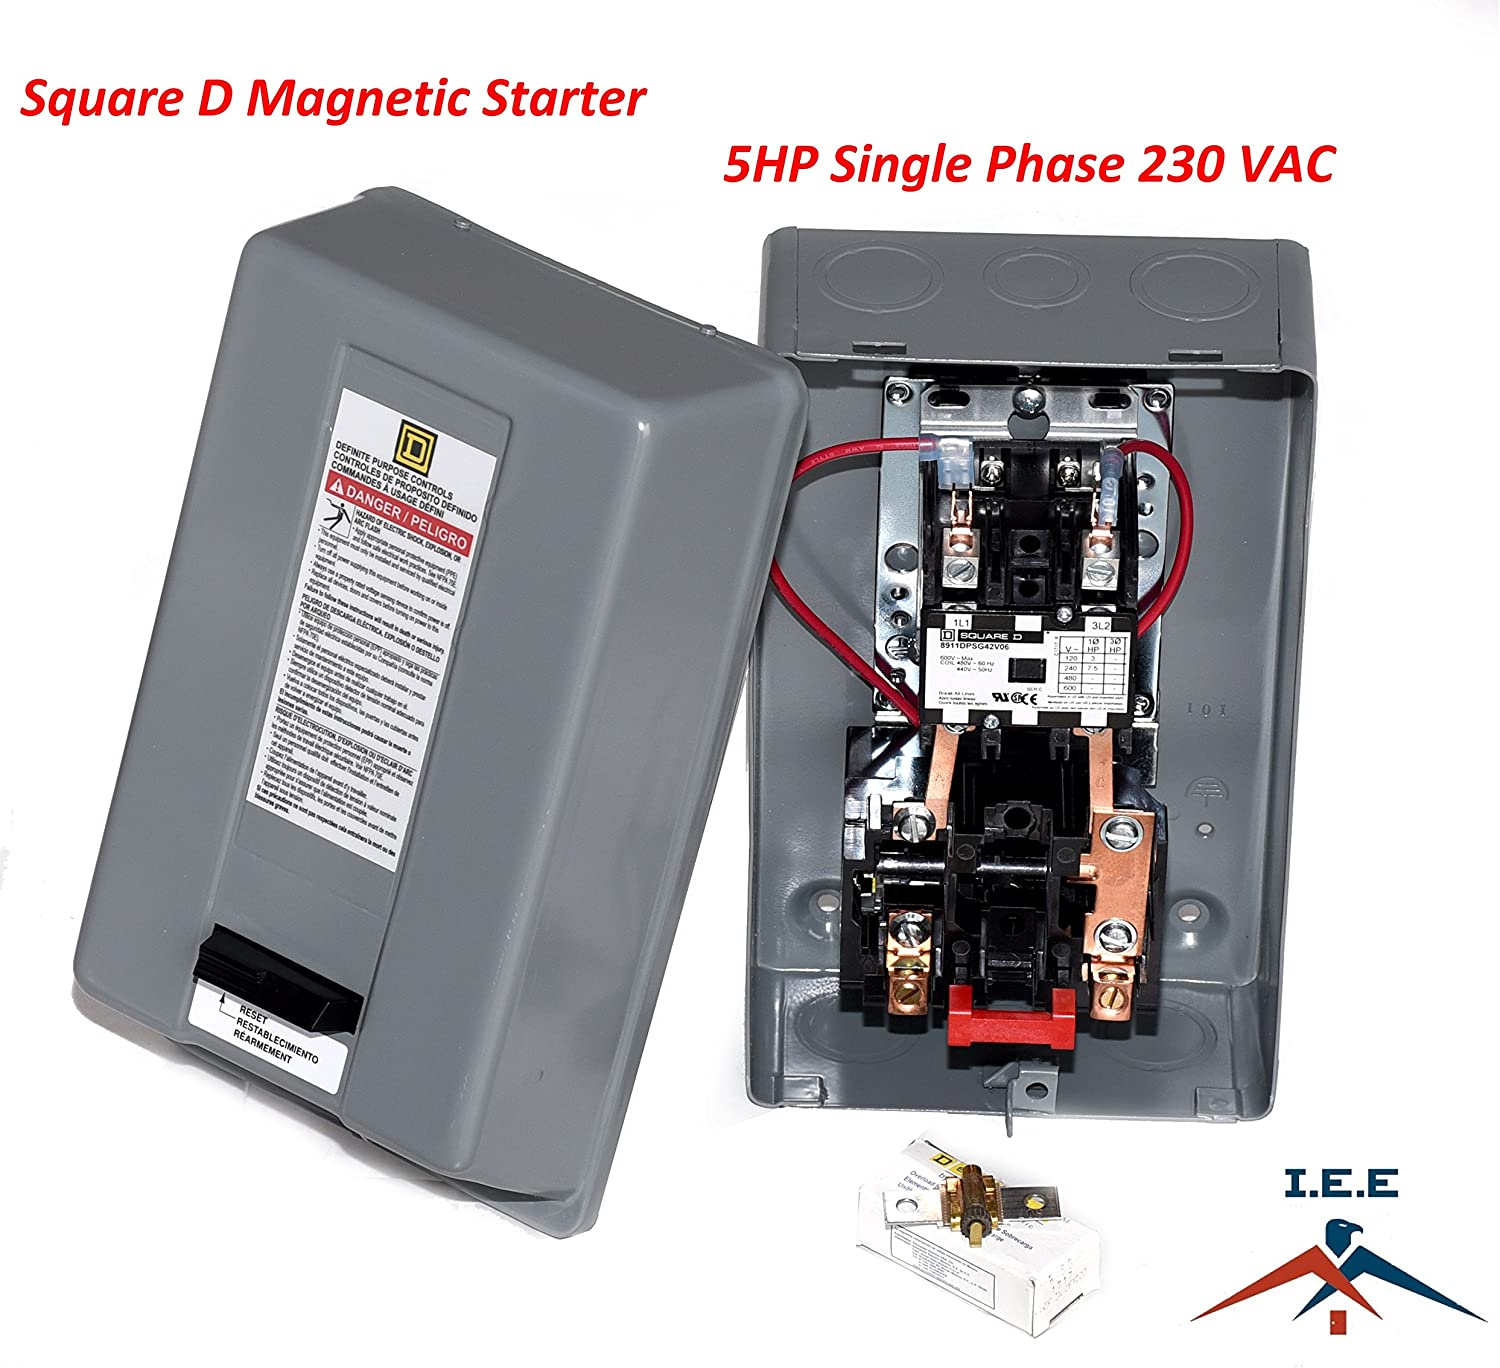 square d safety switch wiring diagram motor starter 5hp 1ph 230v definite purpose magnetic motor starter  motor starter 5hp 1ph 230v definite